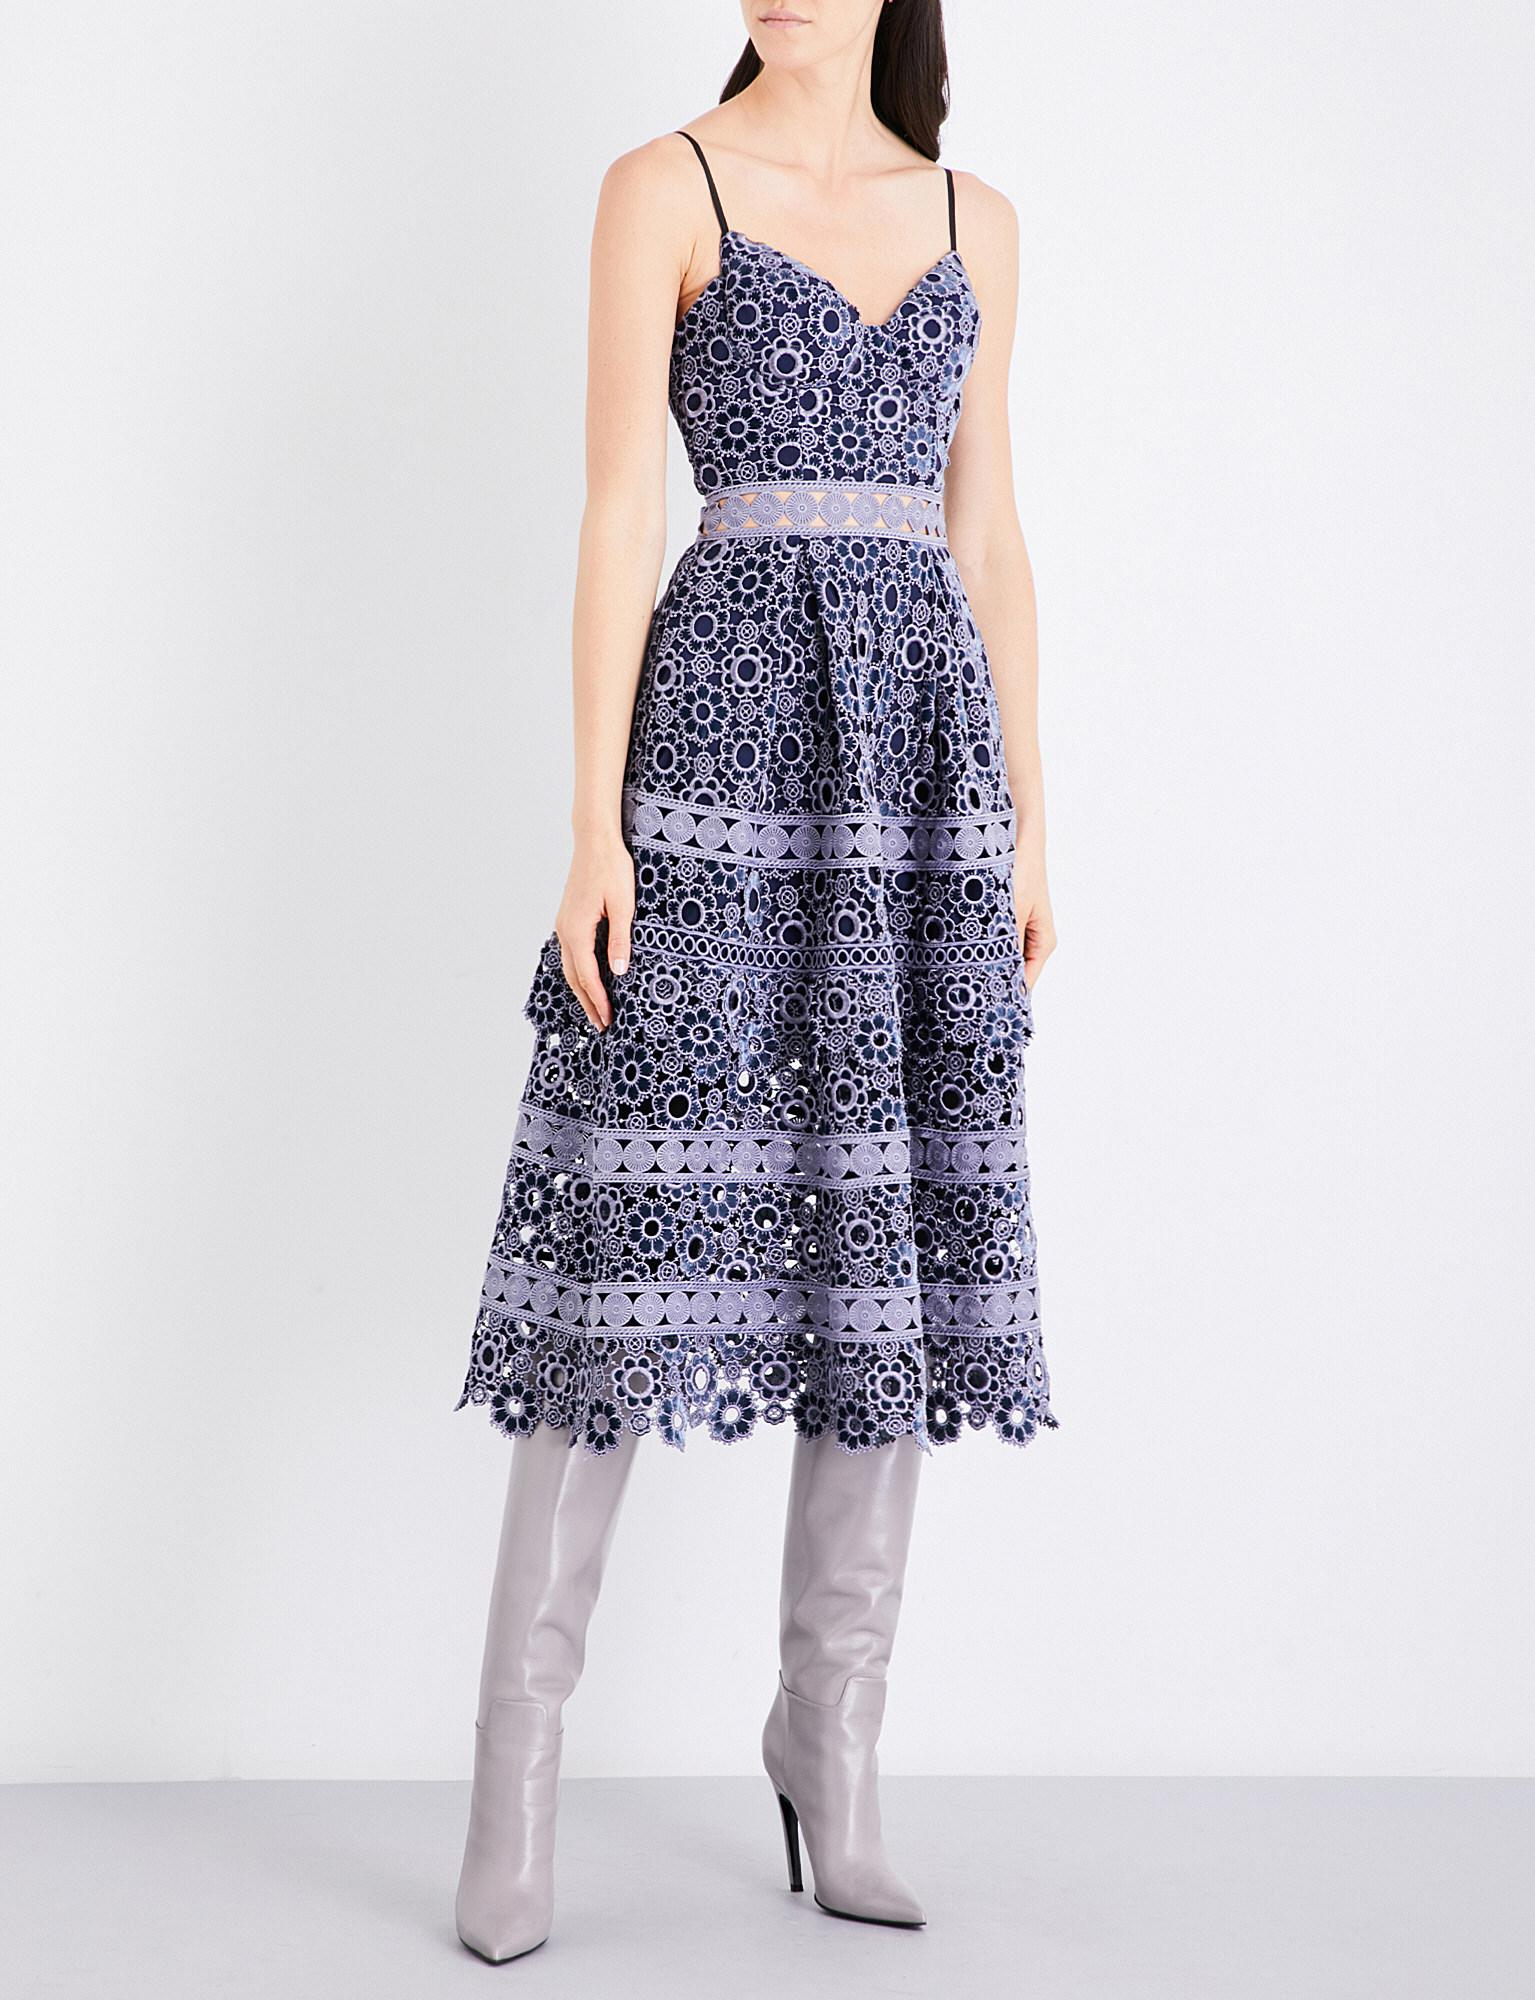 b77d4e50afe2c Lyst - Self-Portrait Floral-embroidered Cutout Midi Dress in Gray